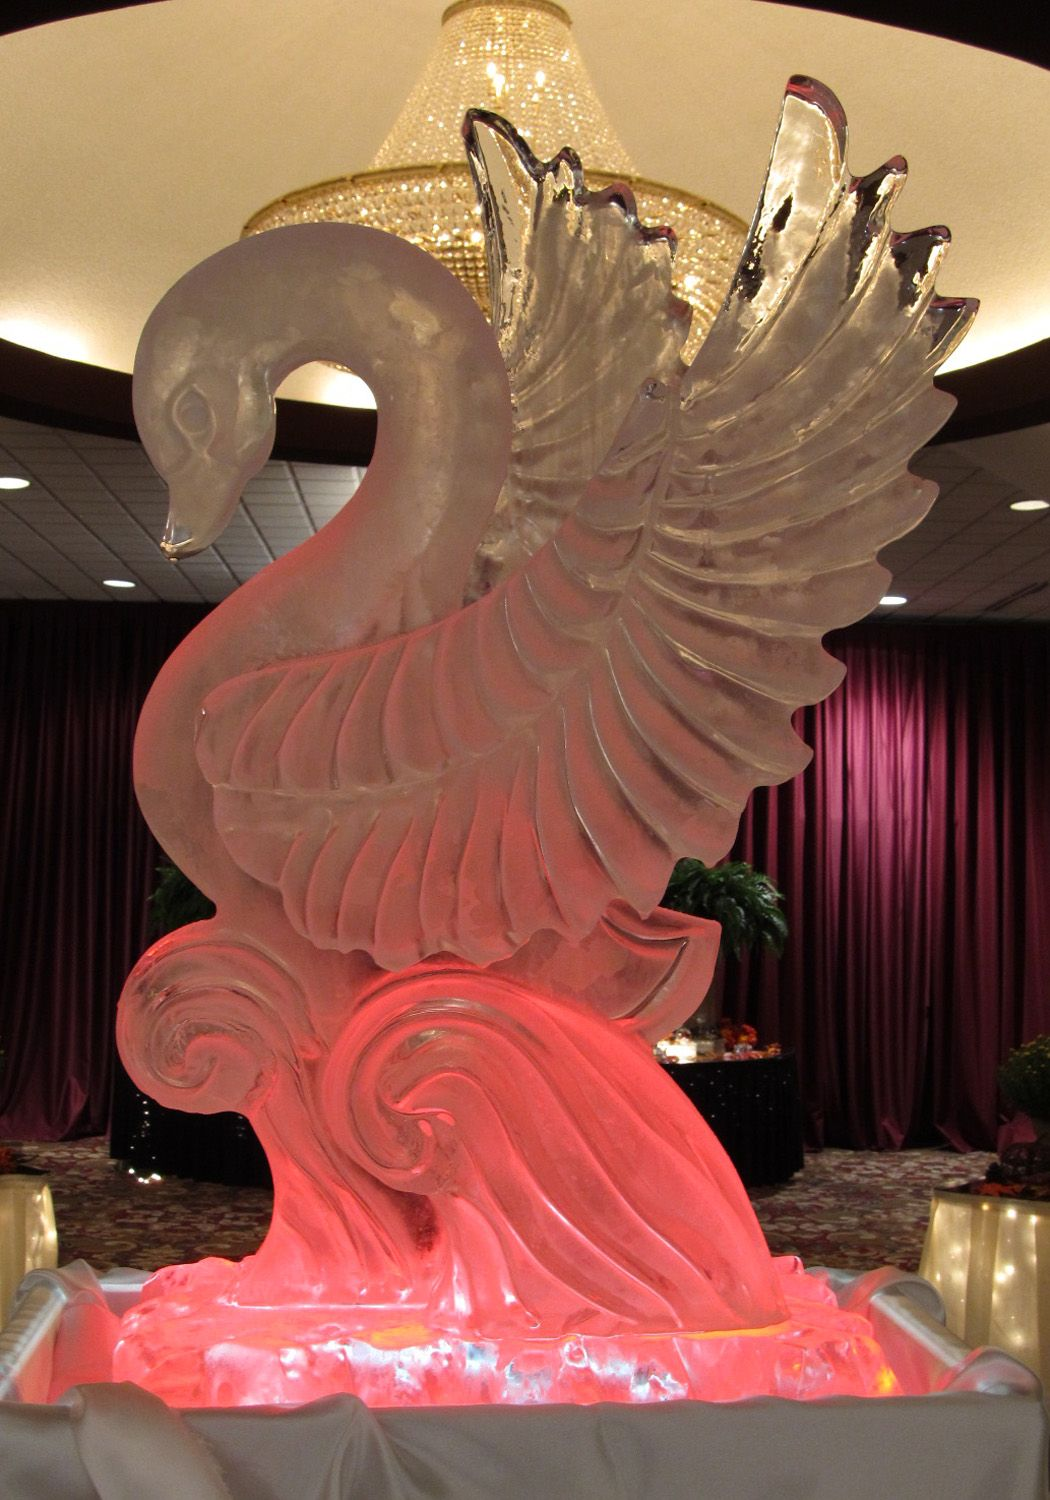 Swan Ice Carving Snow And Ice Sculptures Pinterest Sculptures De Glace Glace Et Pink